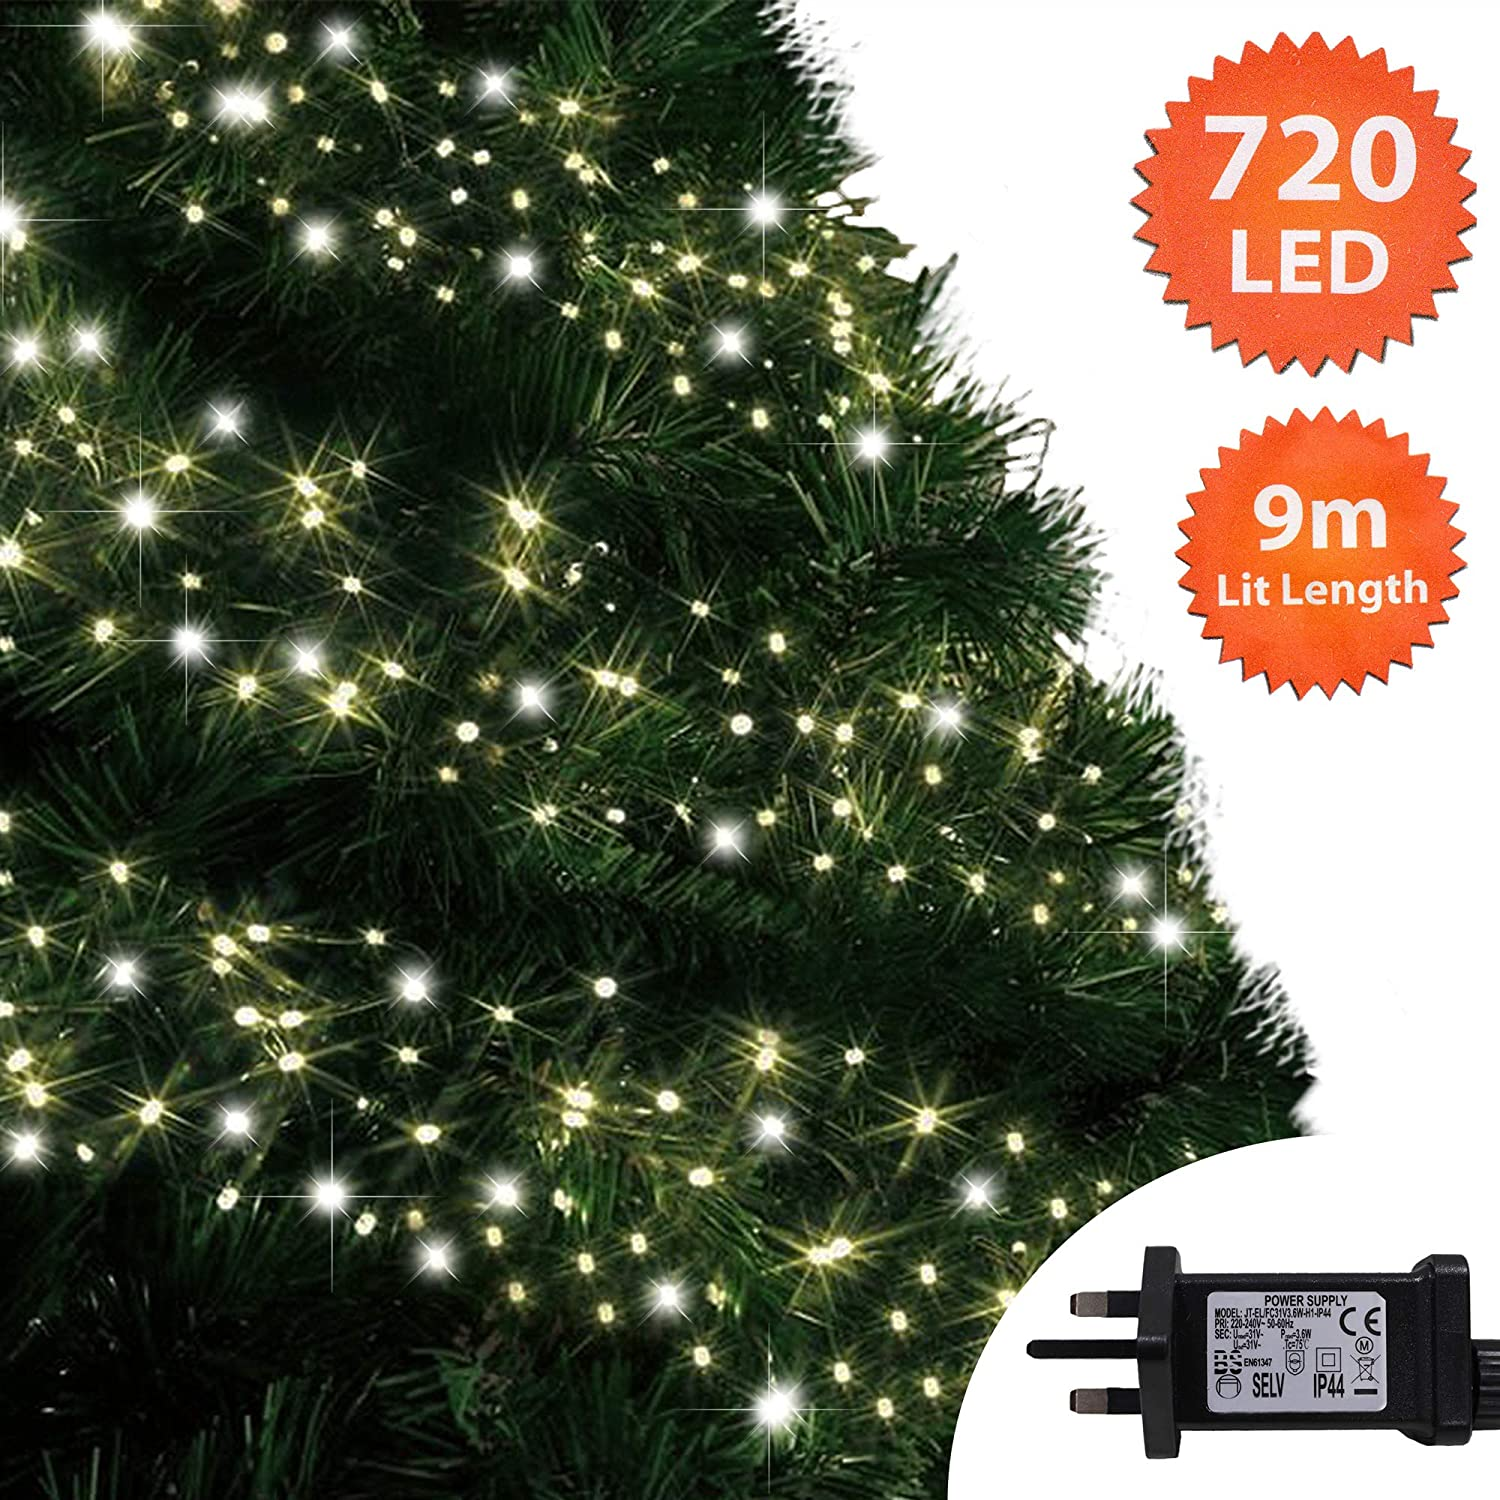 Cool Christmas Tree.Christmas Lights 720 Led 9m Warm White And Cool White Alternative Outdoor Cluster Tree Lights String Indoor Fairy Lights Memory Timer Mains Powered